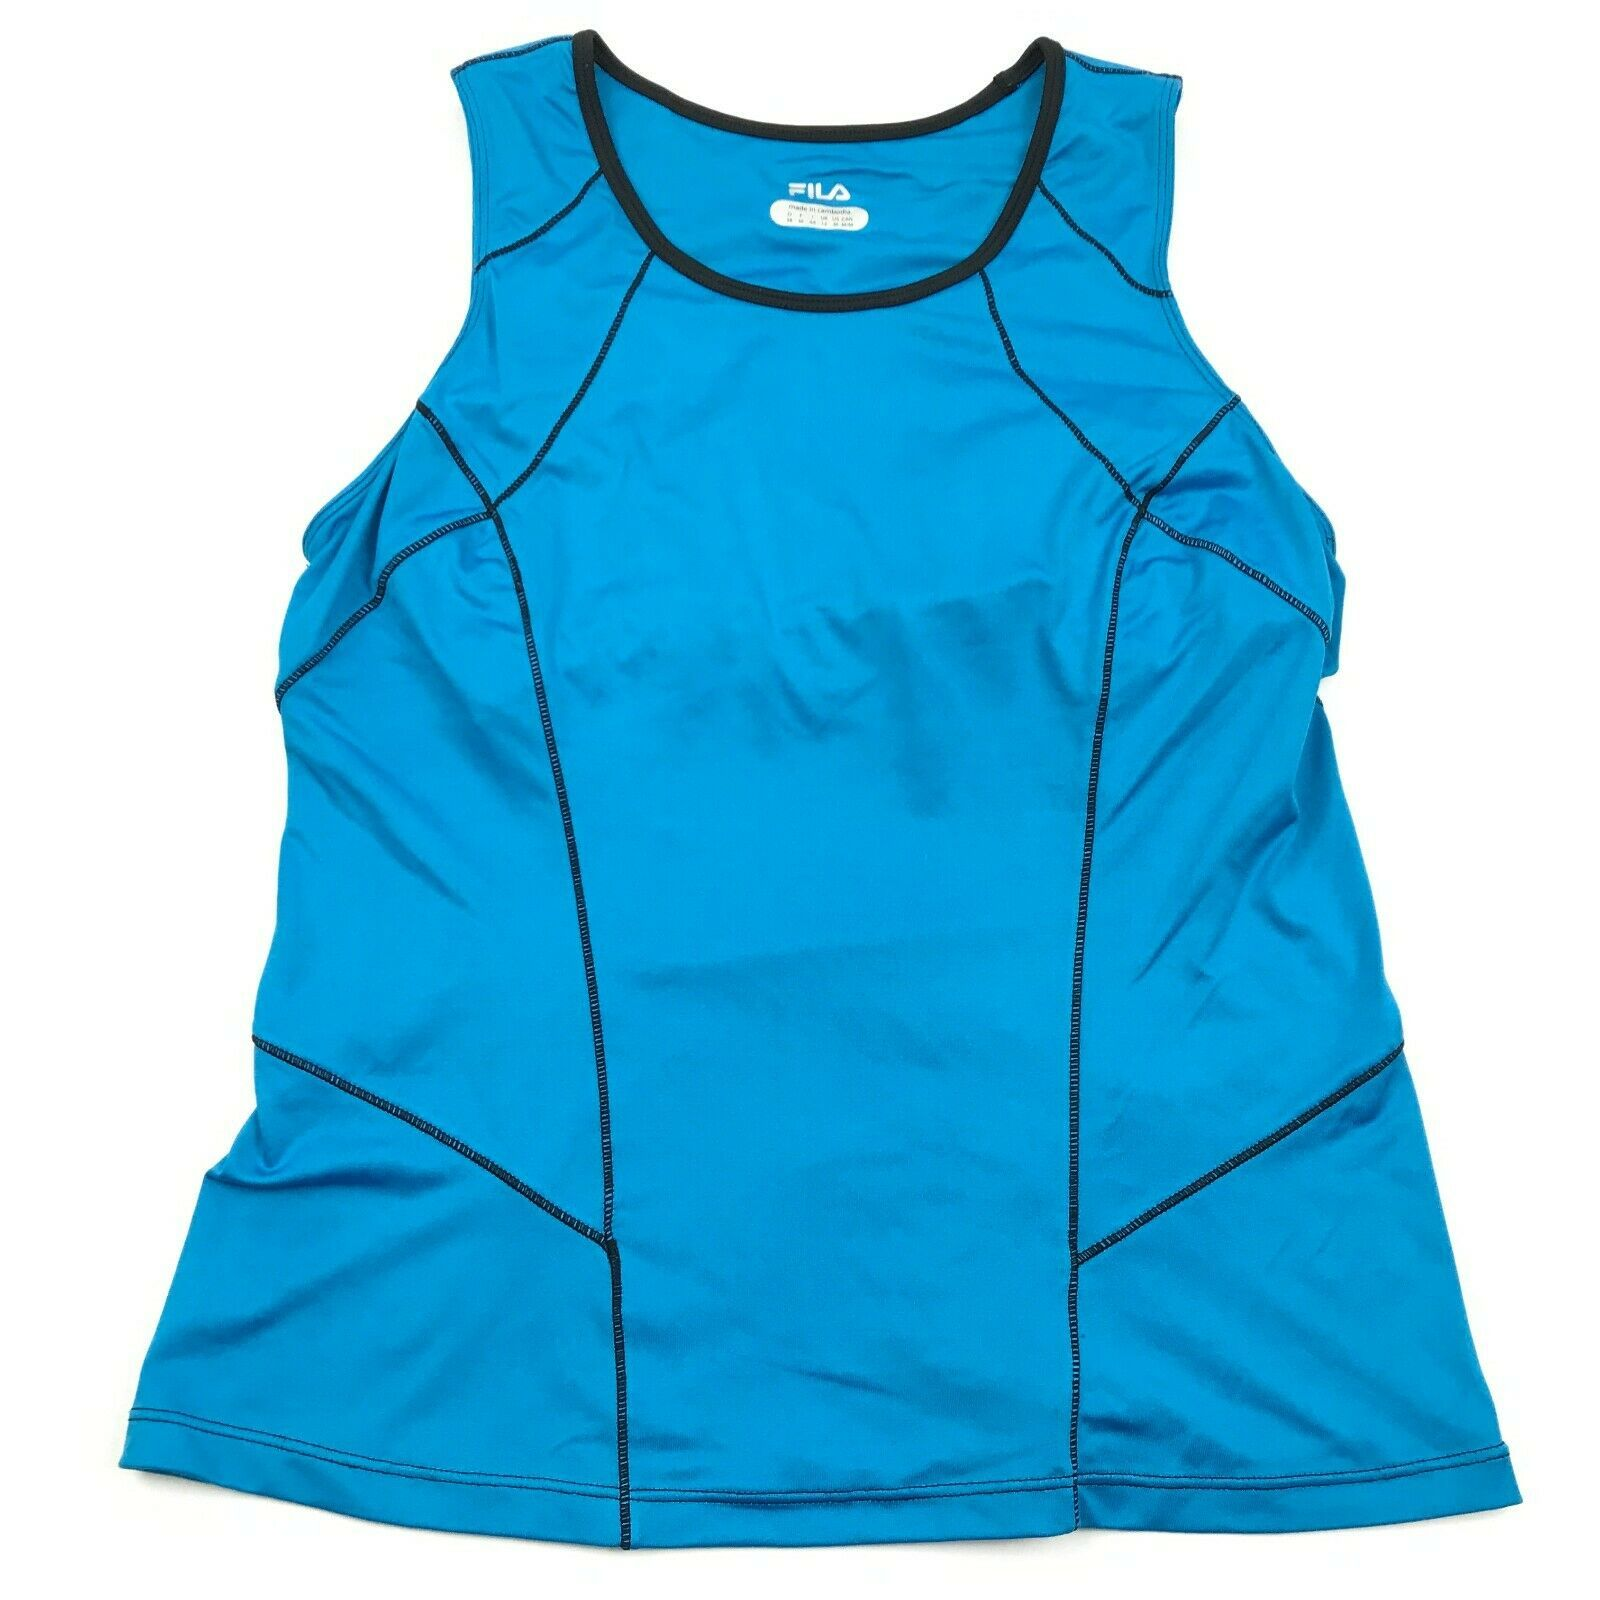 Primary image for FILA Tank Top Womens Size Medium Turquoise Blue Gym Top Sports Bar Sleeveless